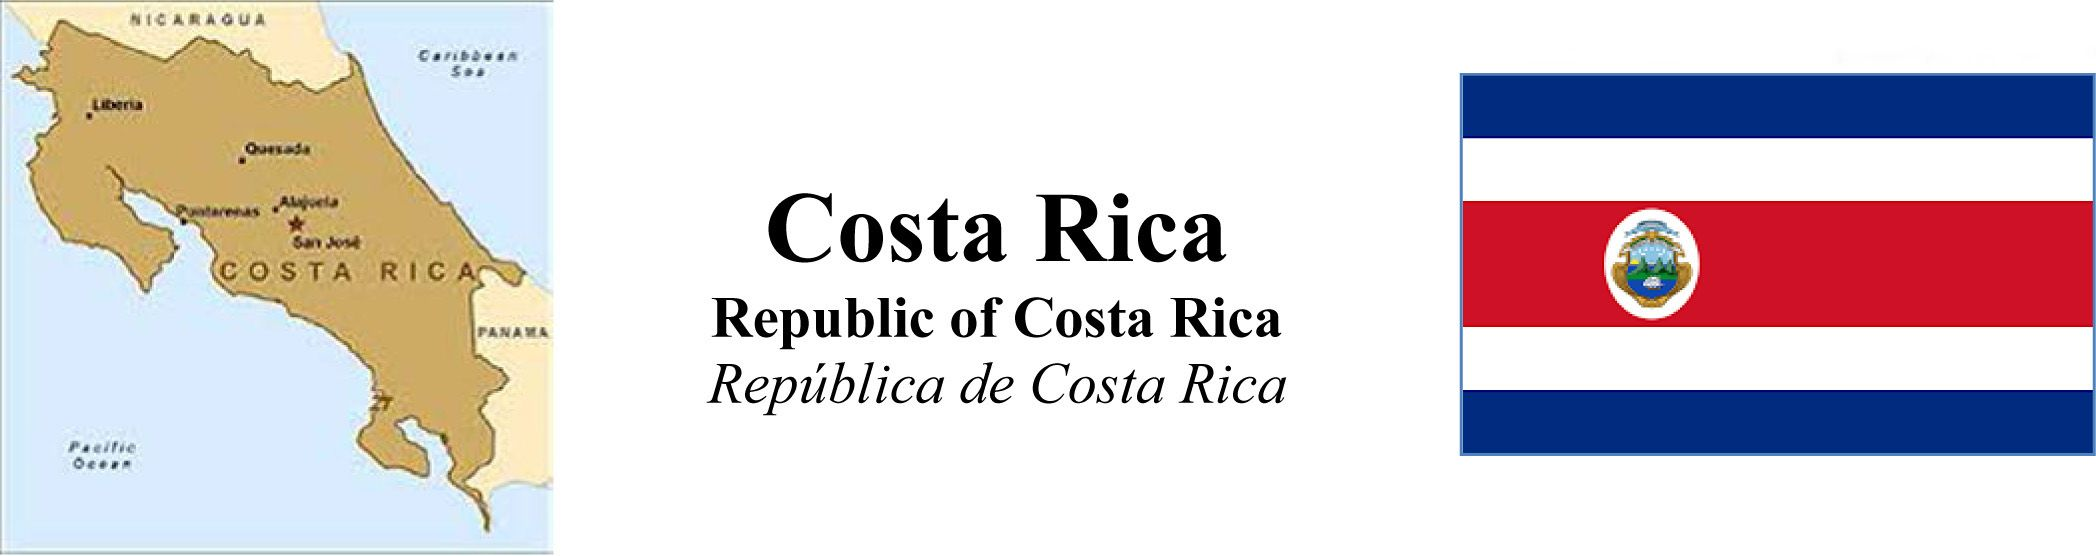 Costa Rica Map & Flag